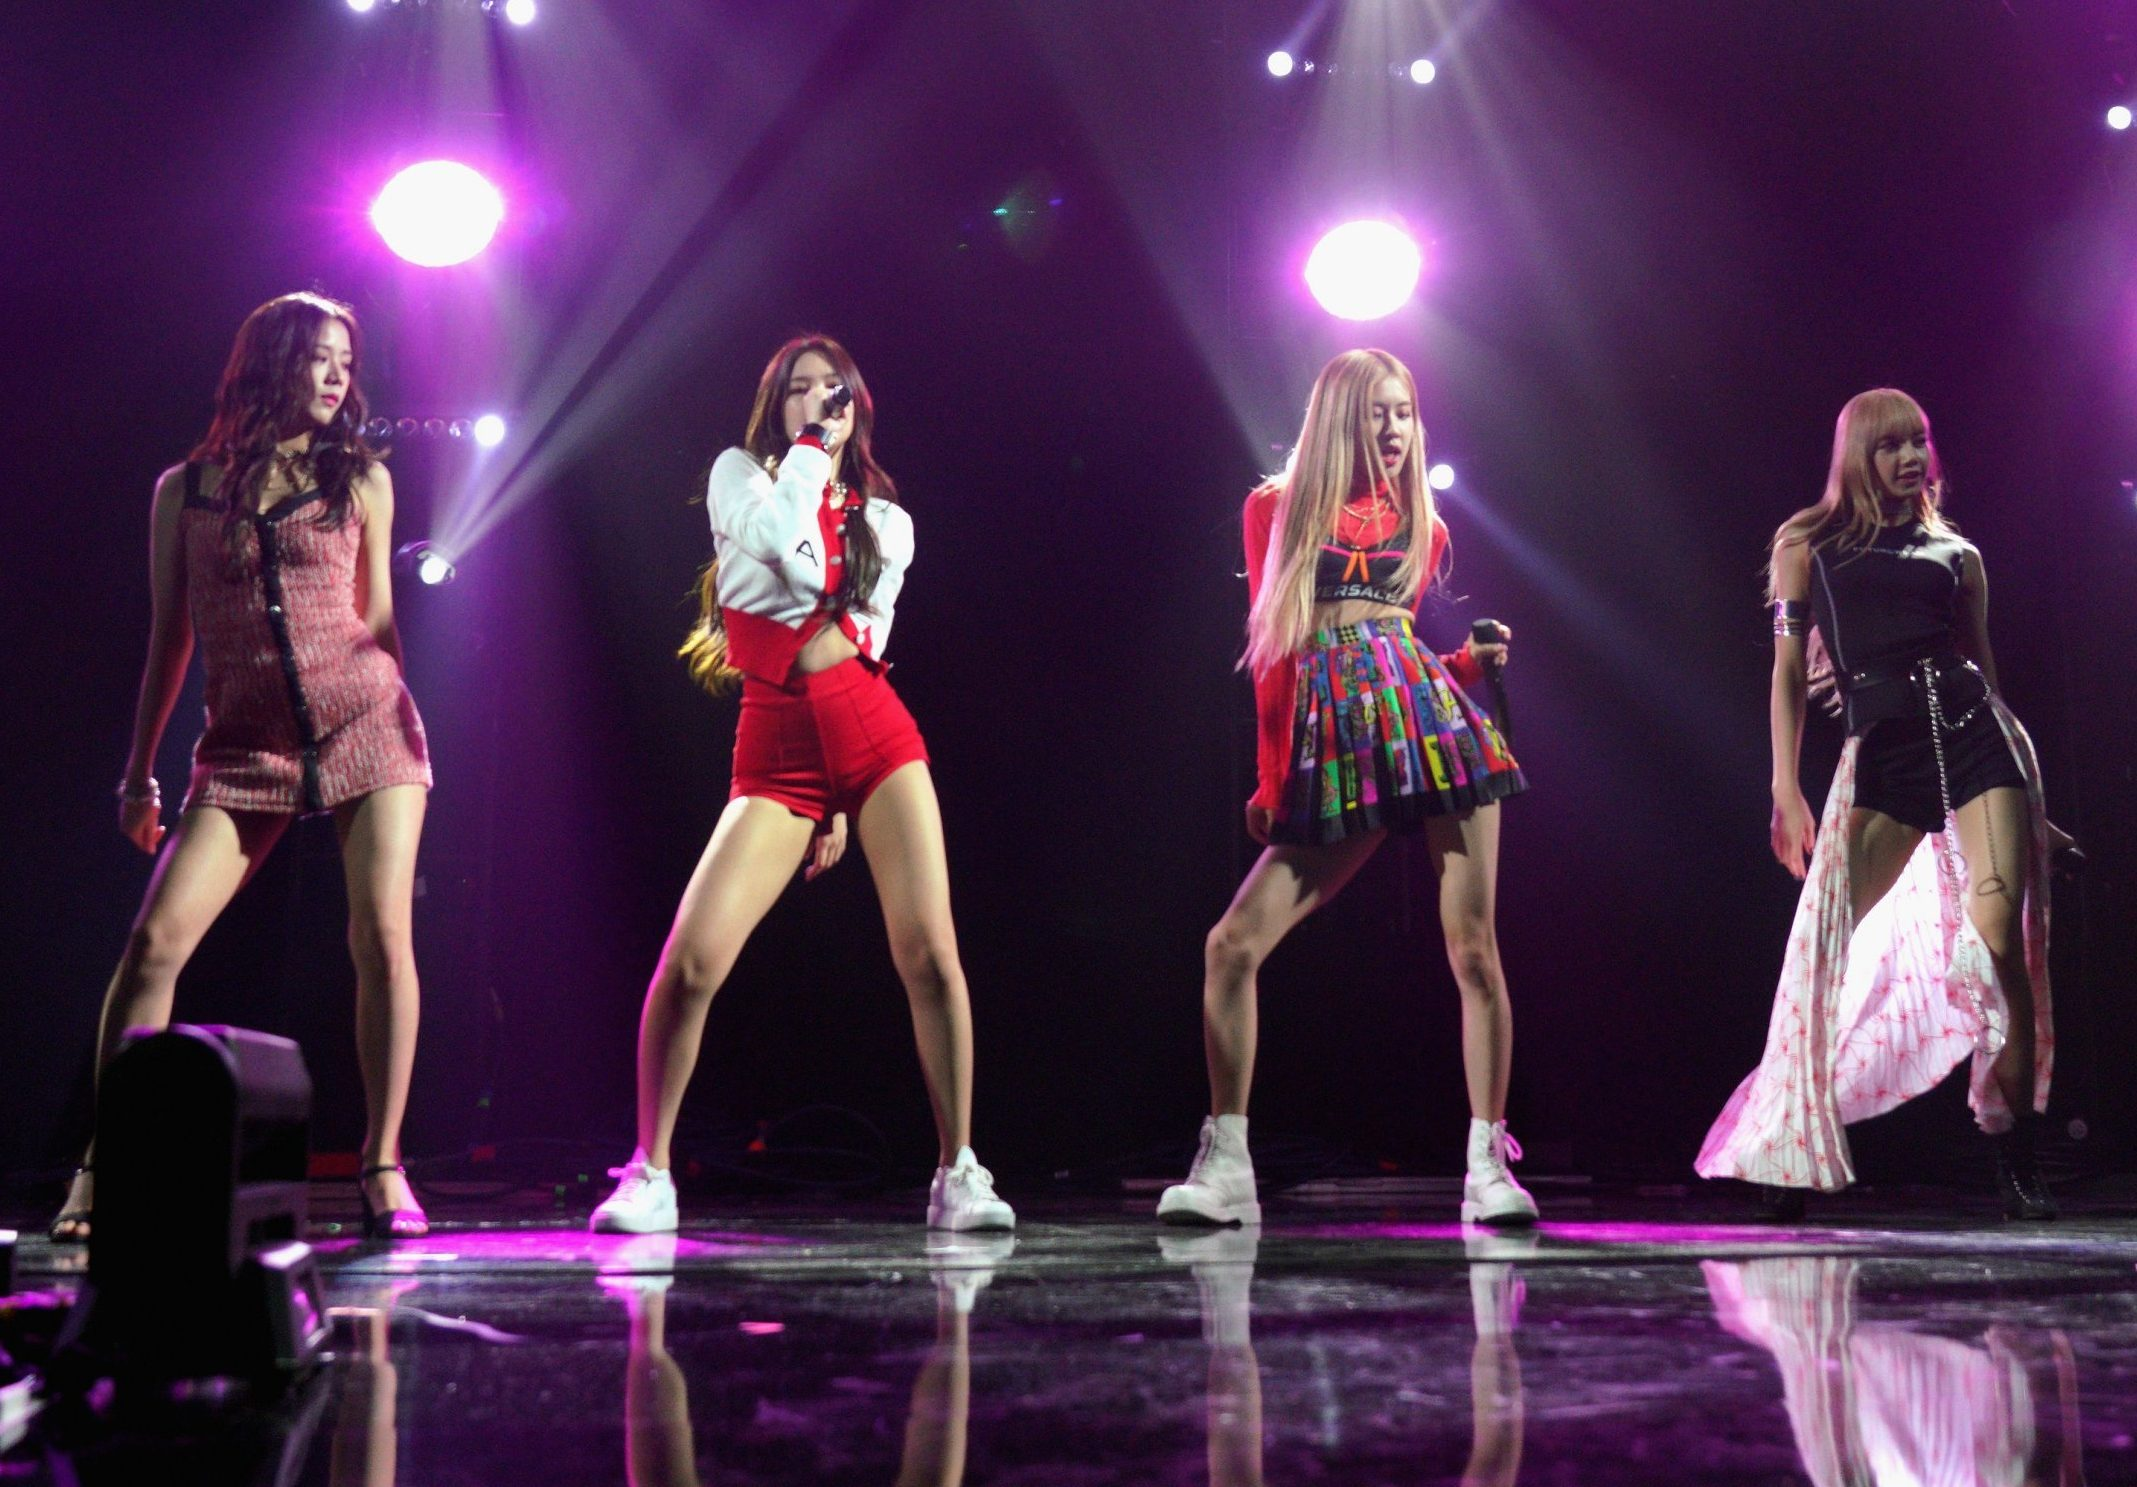 LOS ANGELES, CA - FEBRUARY 09: BlackPink performs during Sir Lucian Grainge's 2019 Artist Showcase Presented by Citi during The Row on Feb 9, 2019 in Los Angeles, California. (Photo by JC Olivera/Getty Images for Universal Music Group)